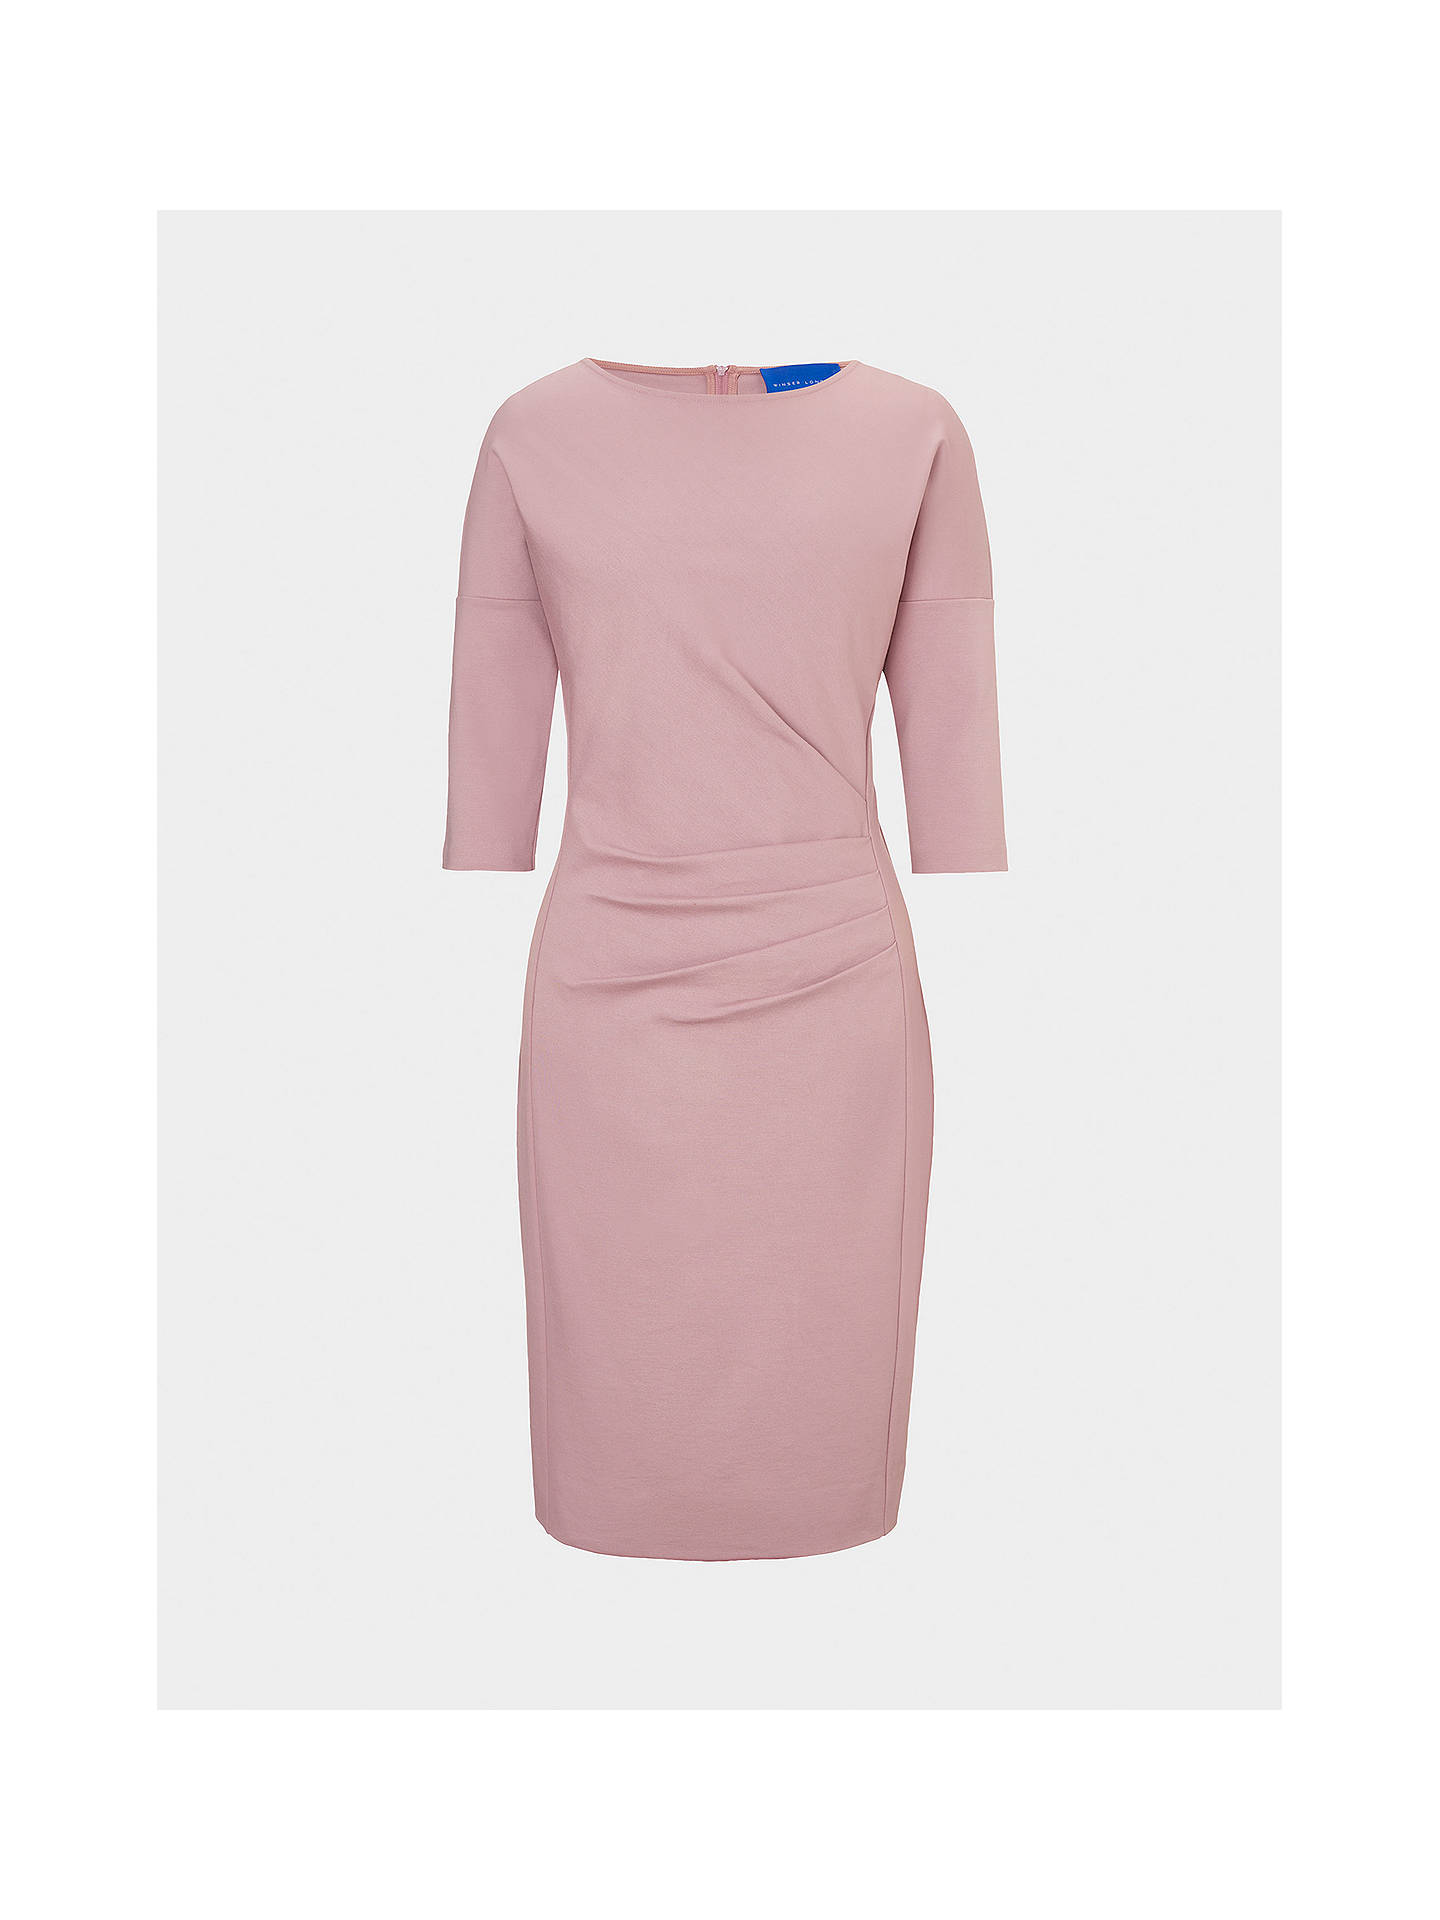 58eaeea5ae56e Winser London Miracle Dress at John Lewis   Partners